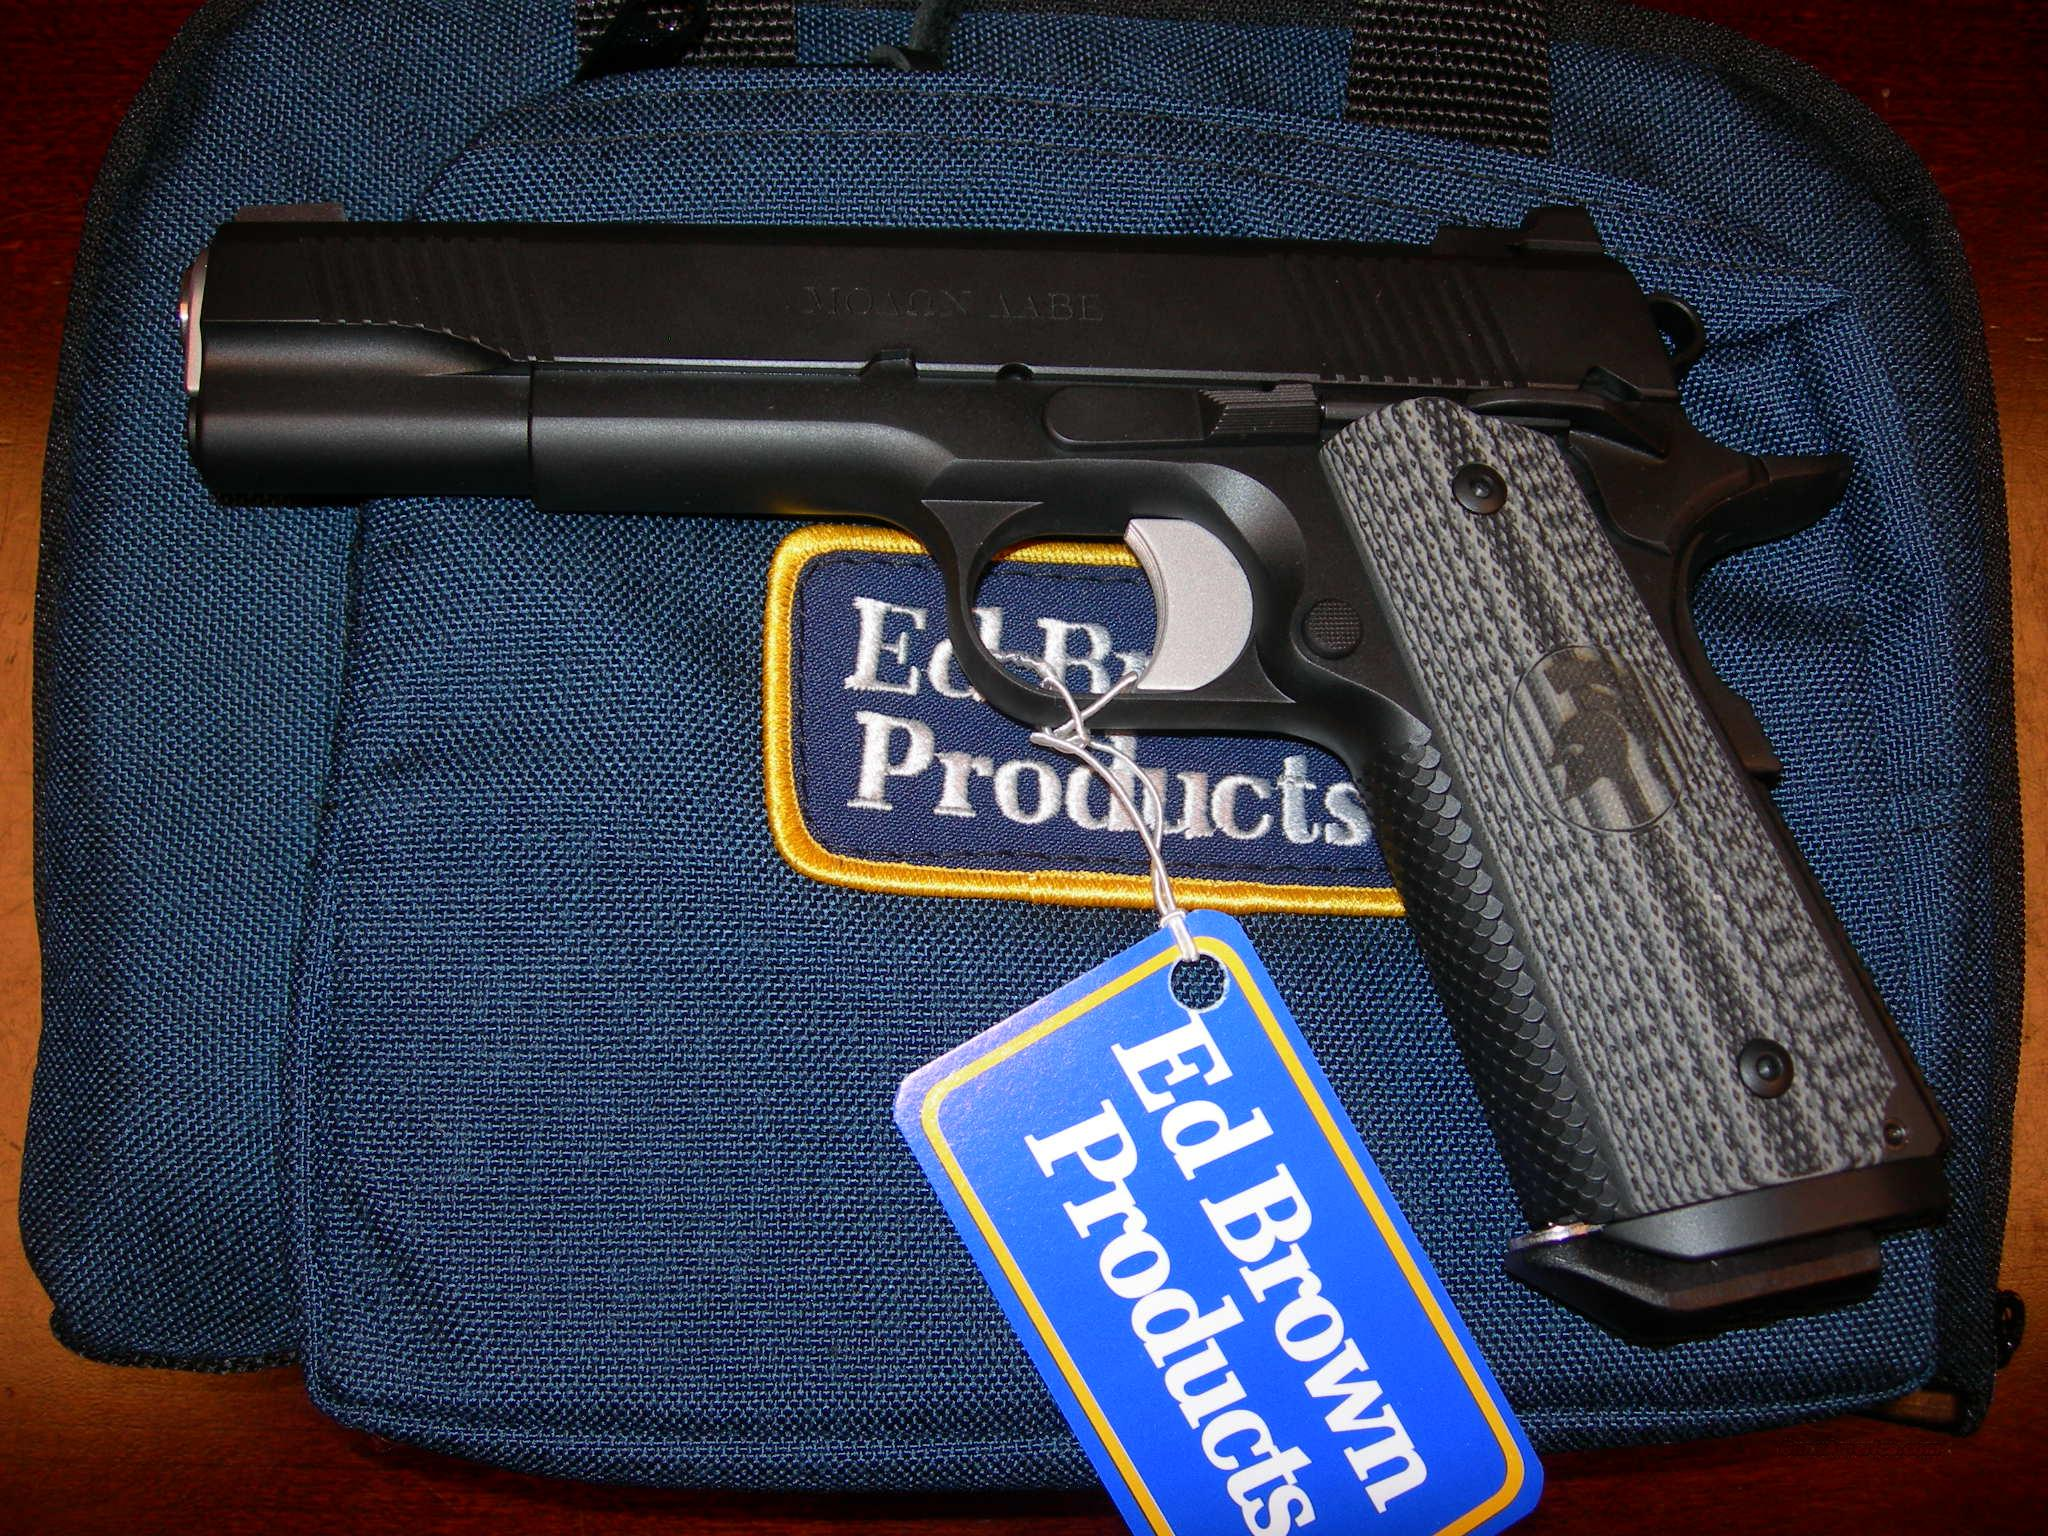 Ed Brown Products  Molon Labe  Guns > Pistols > Ed Brown Pistols